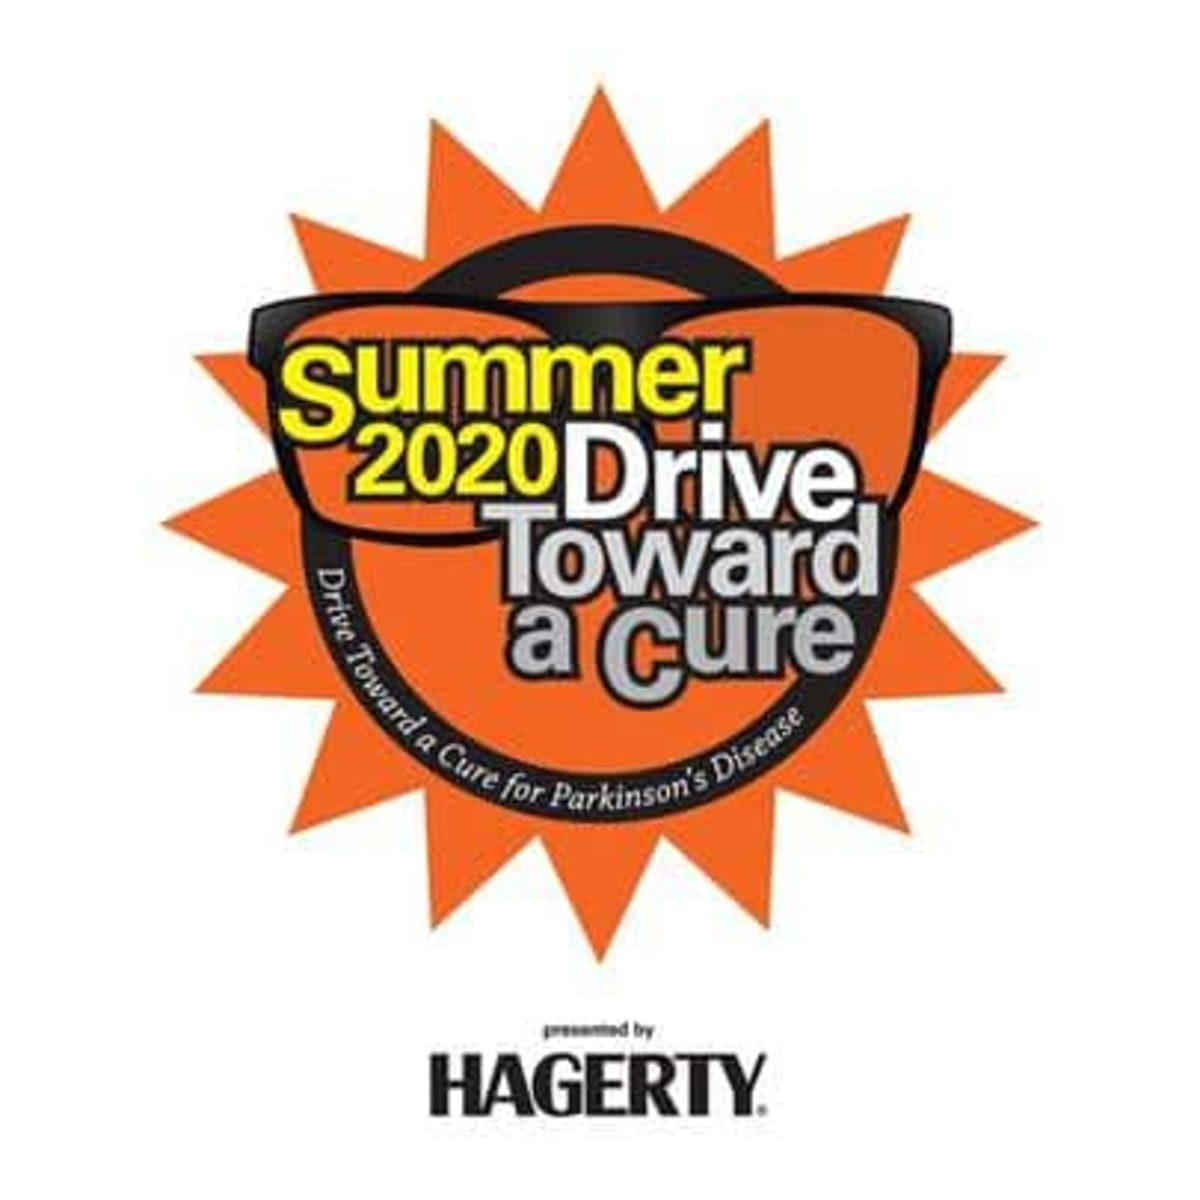 Summer 2020 Drive Toward a Cure, presented by Hagerty.